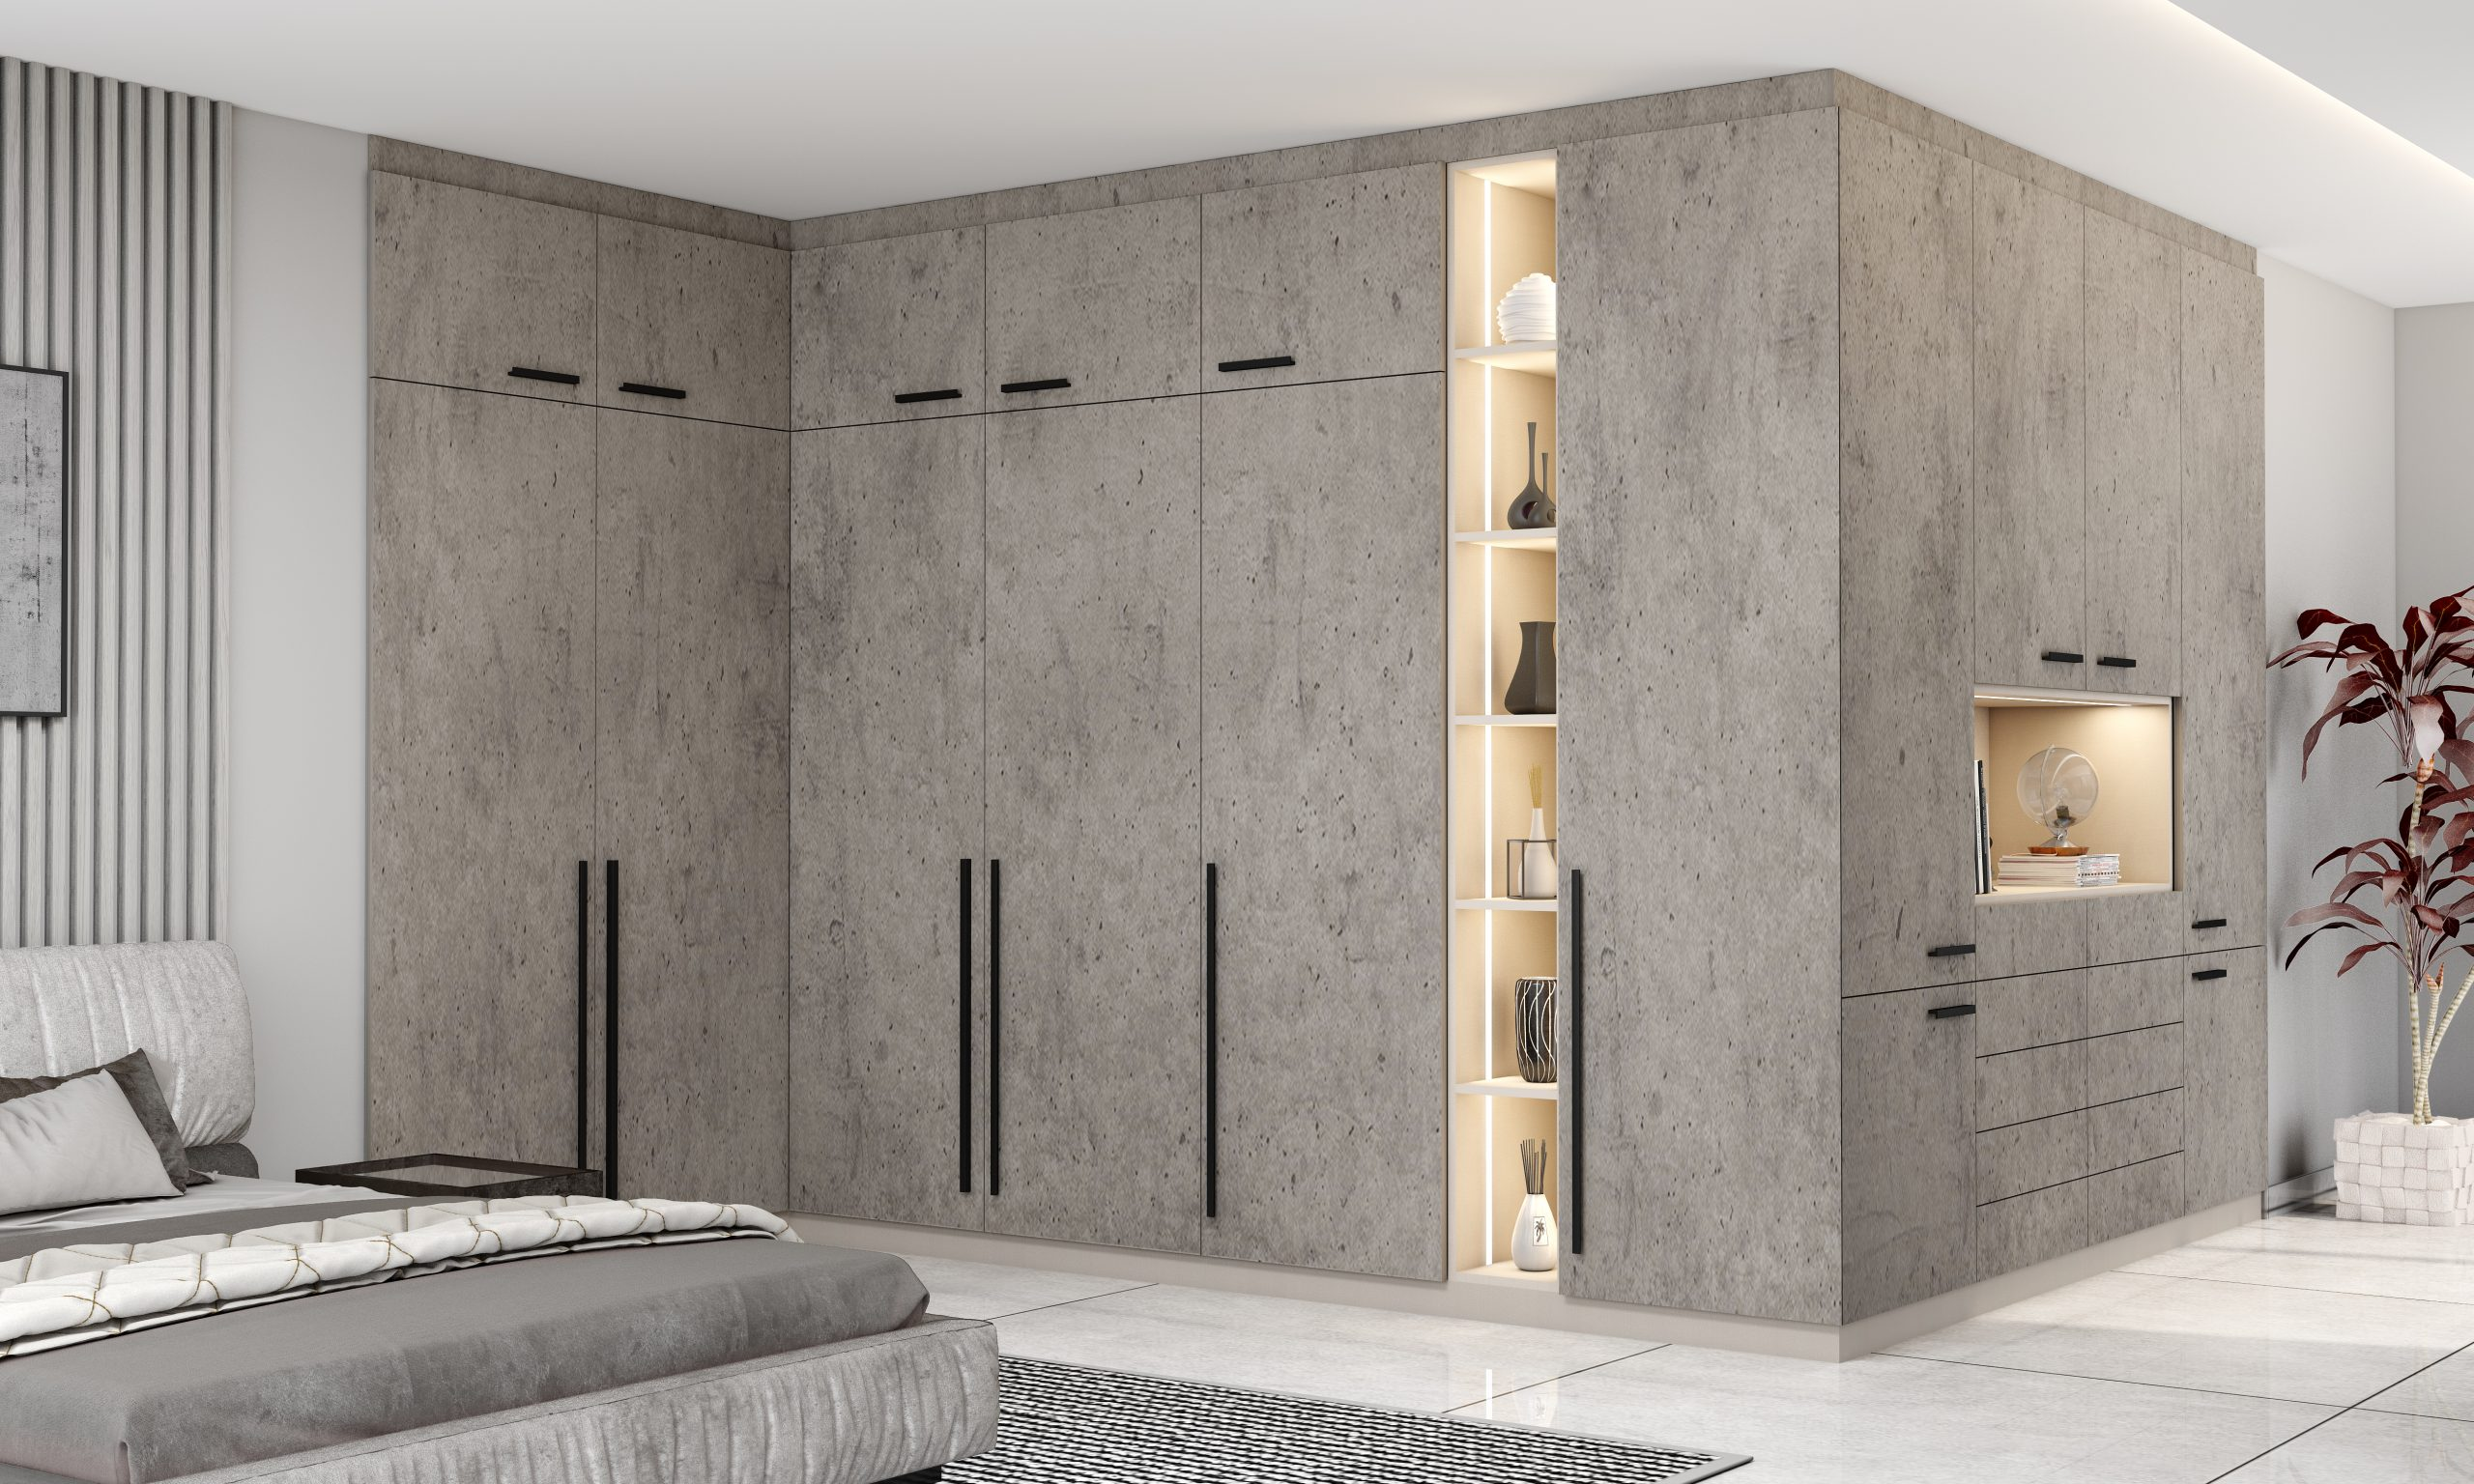 Fitted Hinged Corner Wardrobes in Concrete Finish